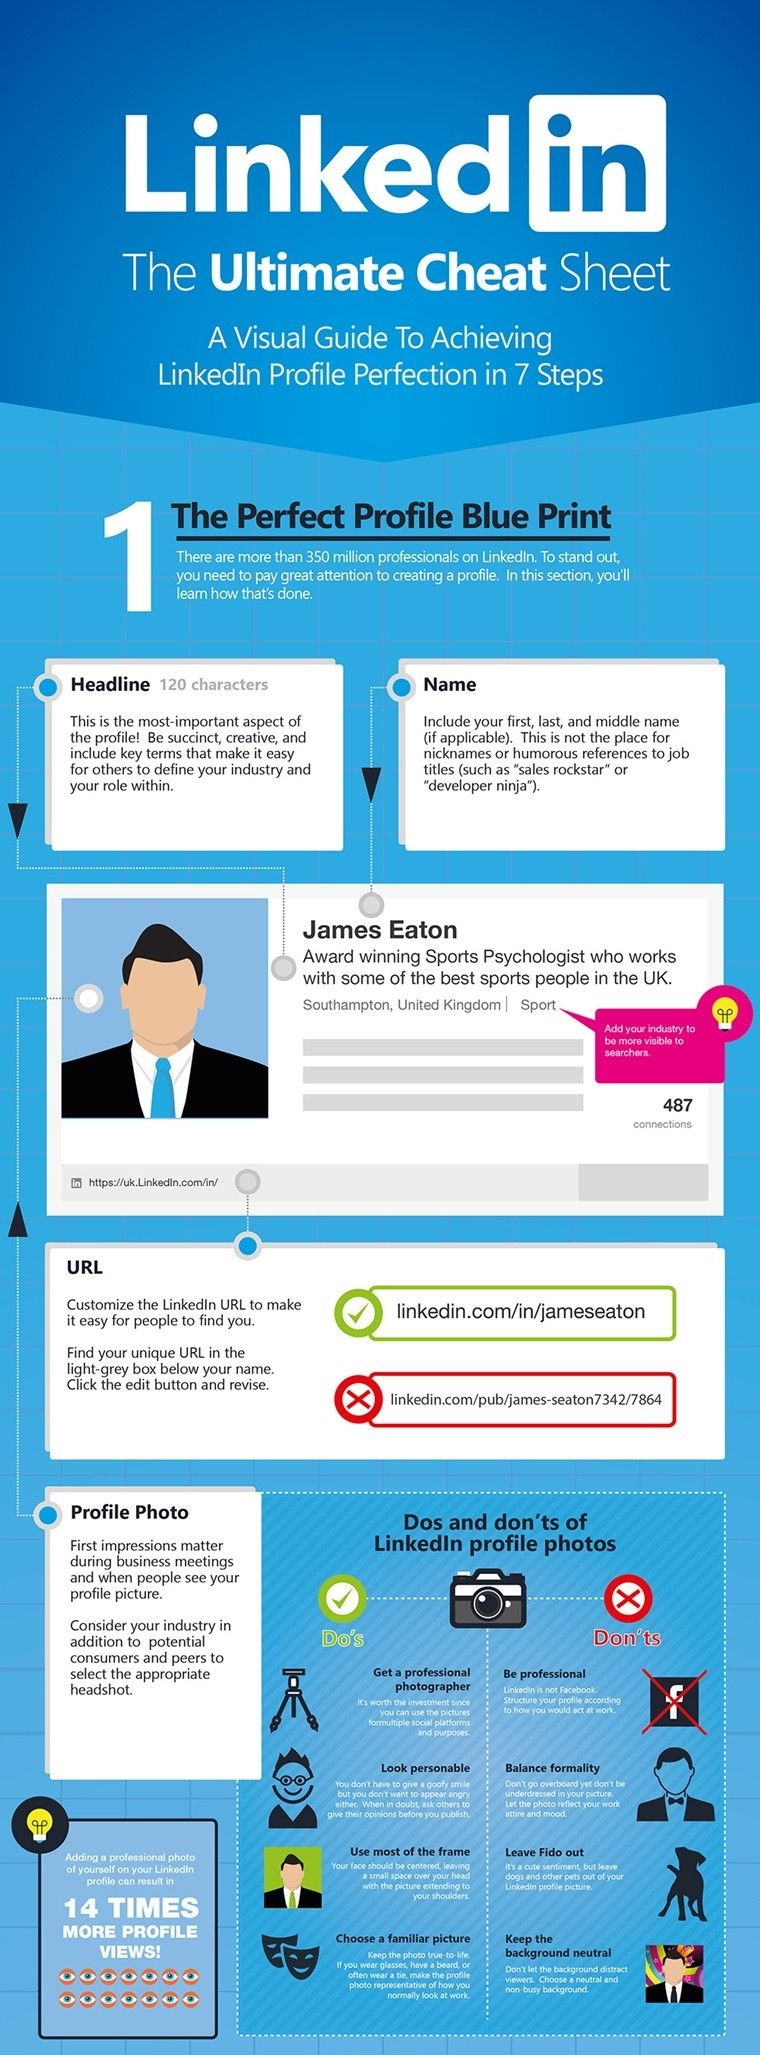 linkedin-cheat-sheet-760x2055